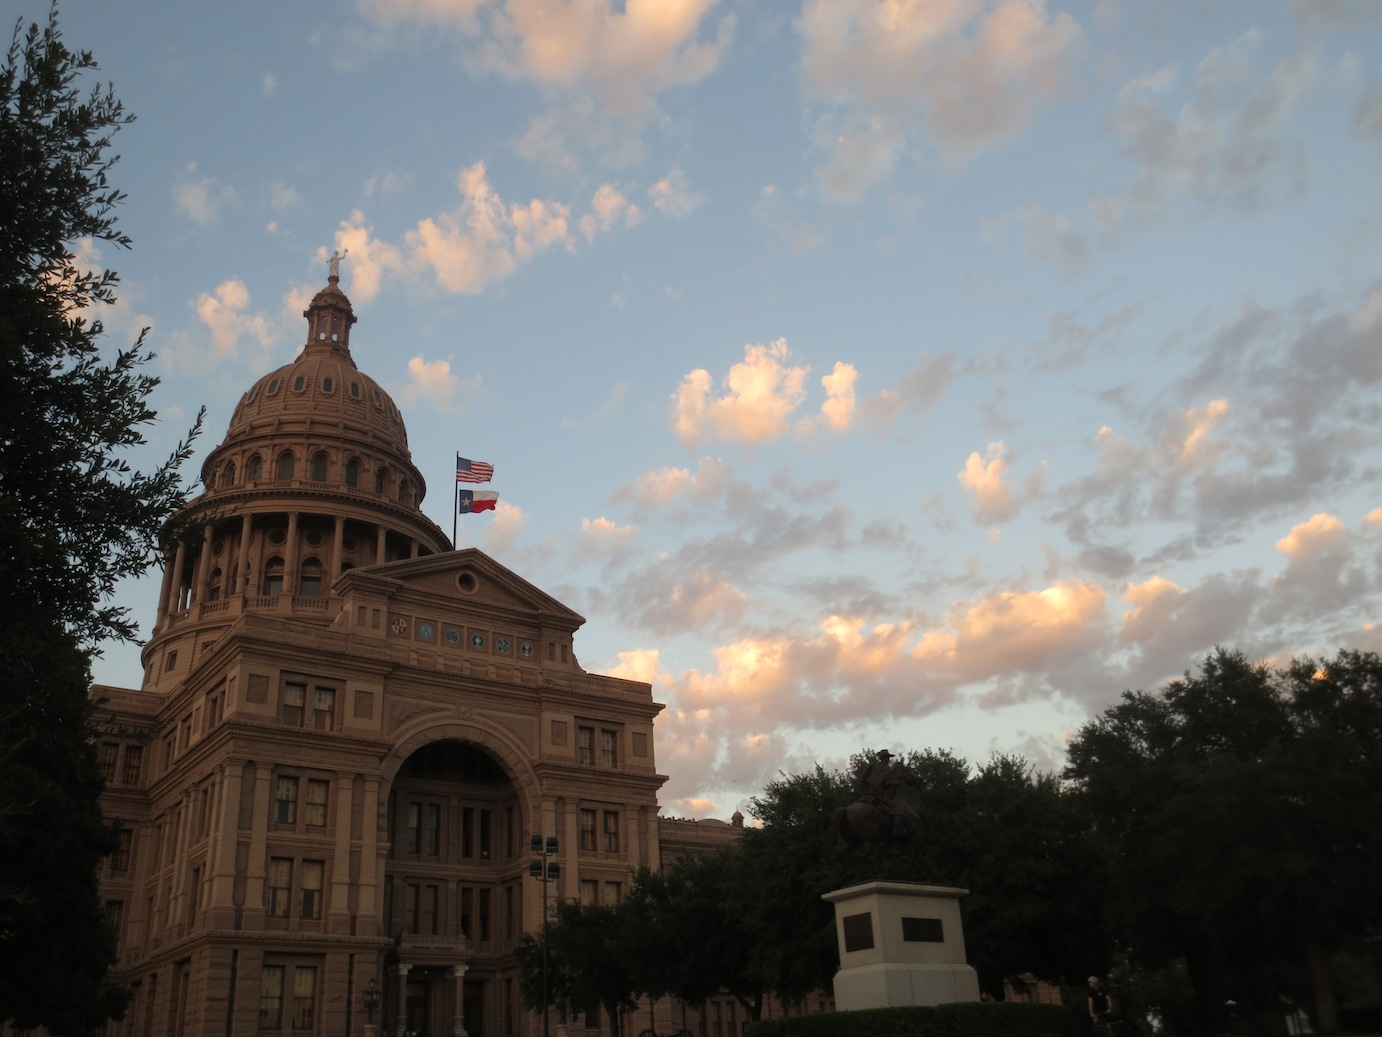 Austin Capitol building at dusk